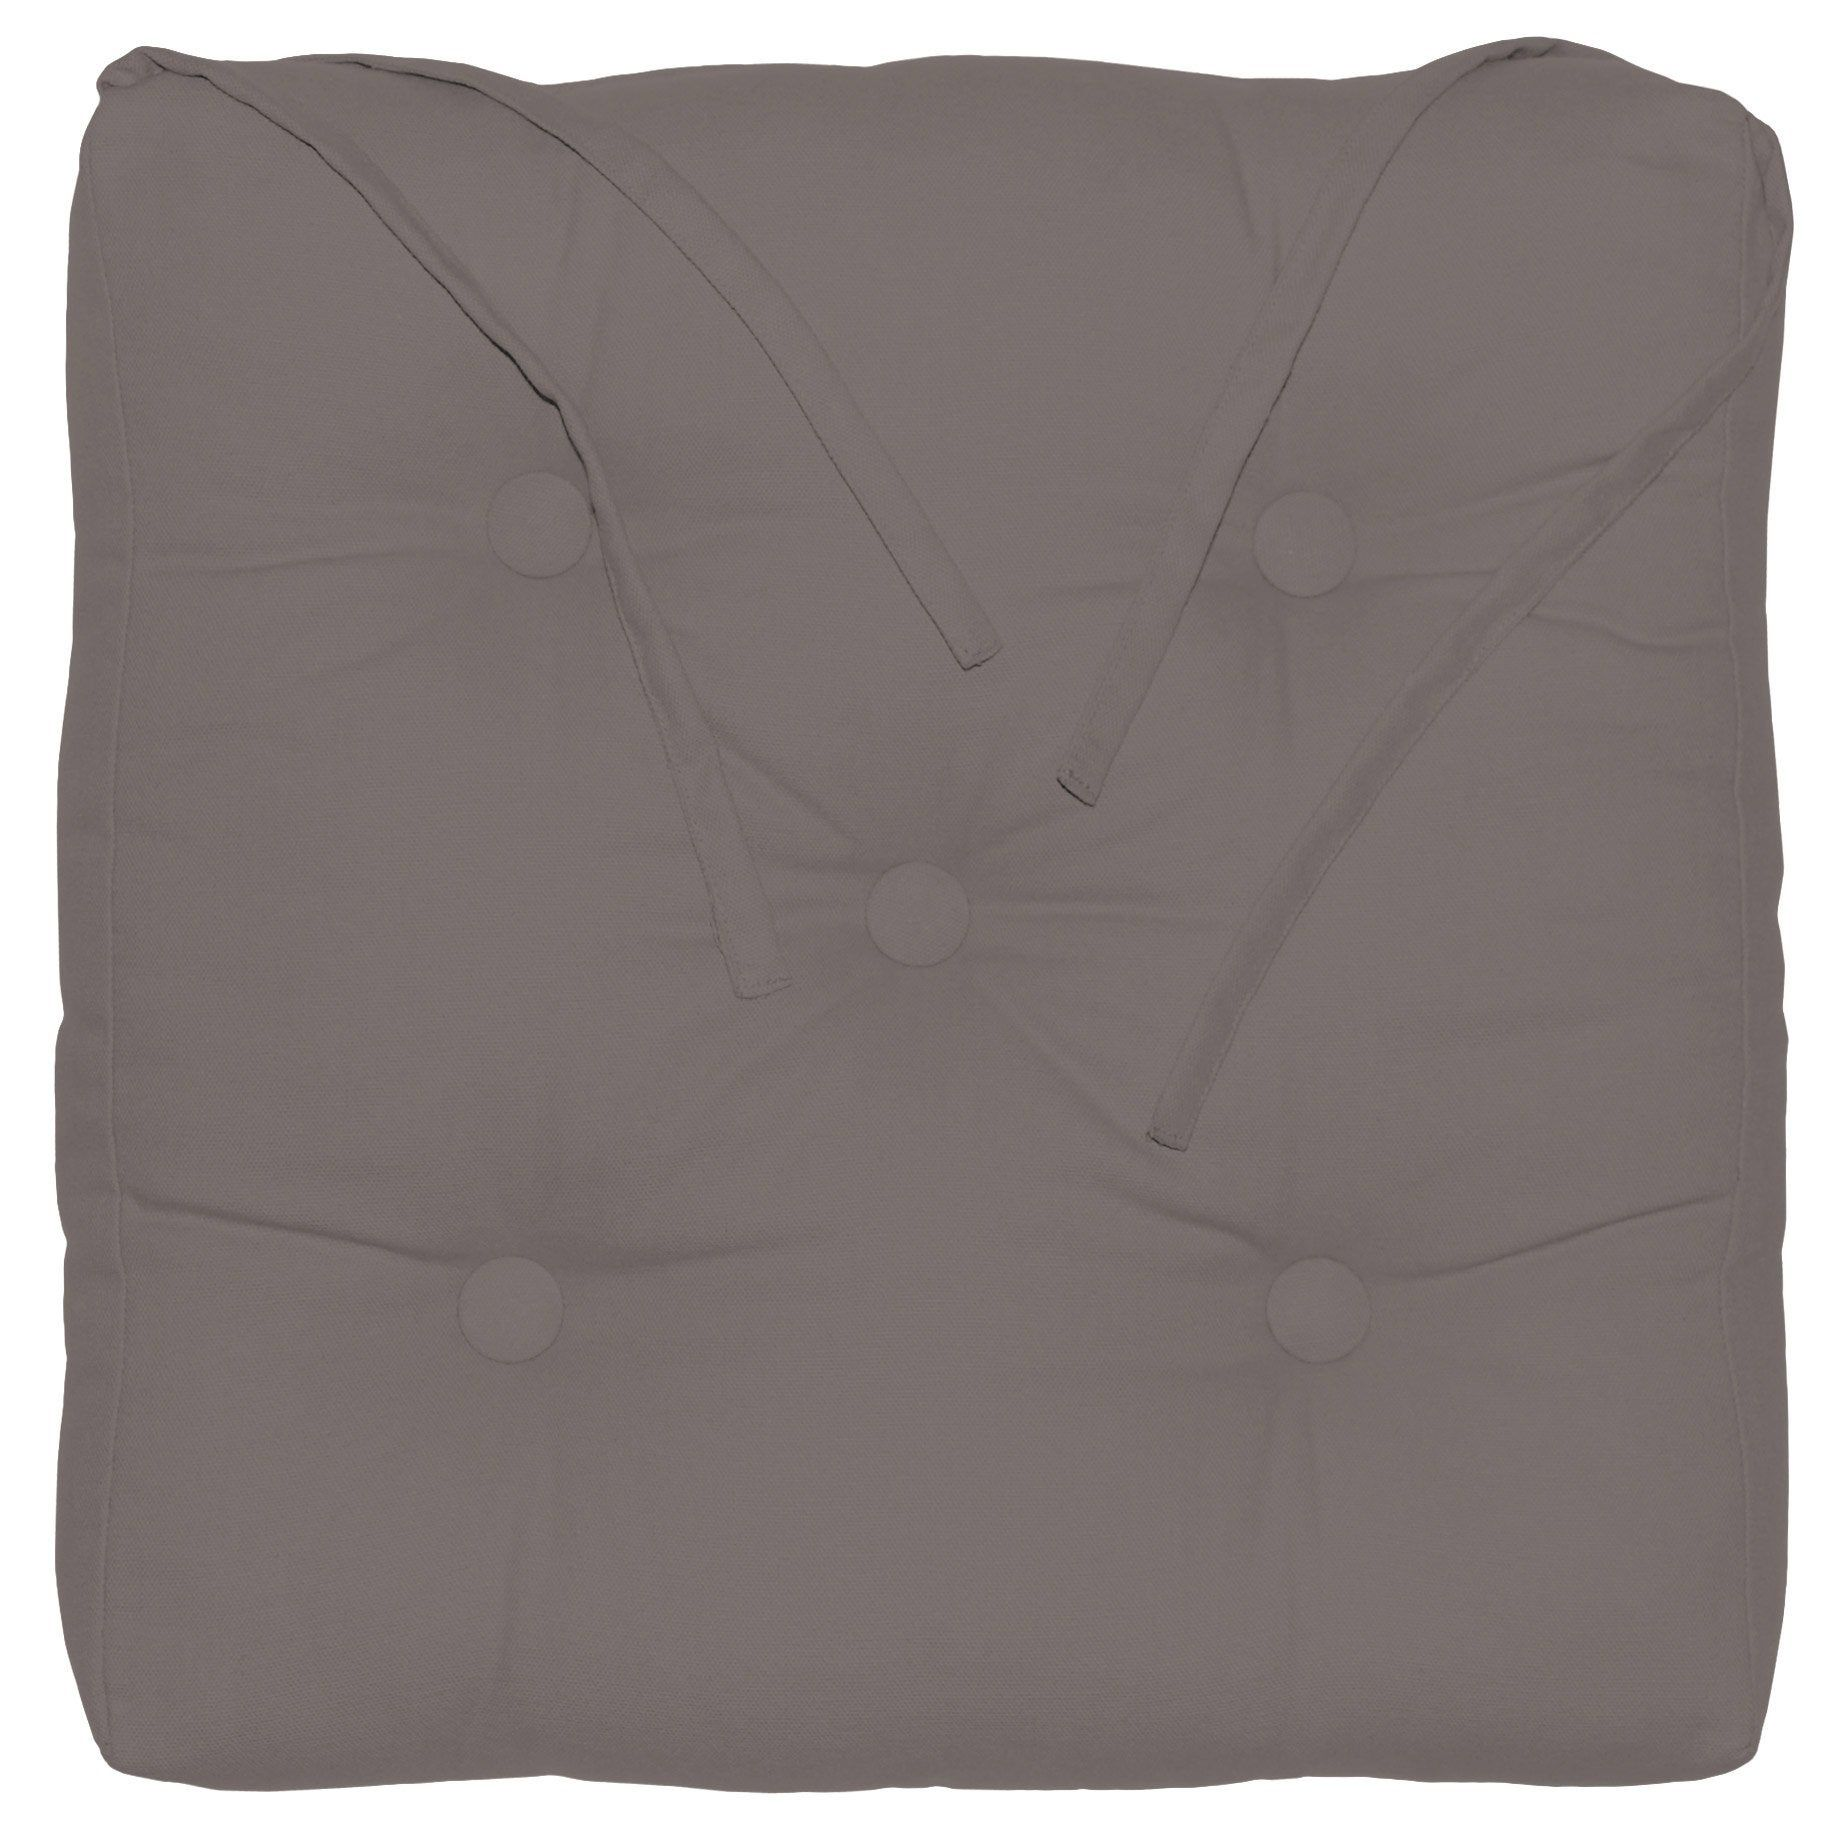 Galette De Chaise Newelema Inspire Taupe L 40 X H 40 Cm Galette De Chaise Galette Et Chaise